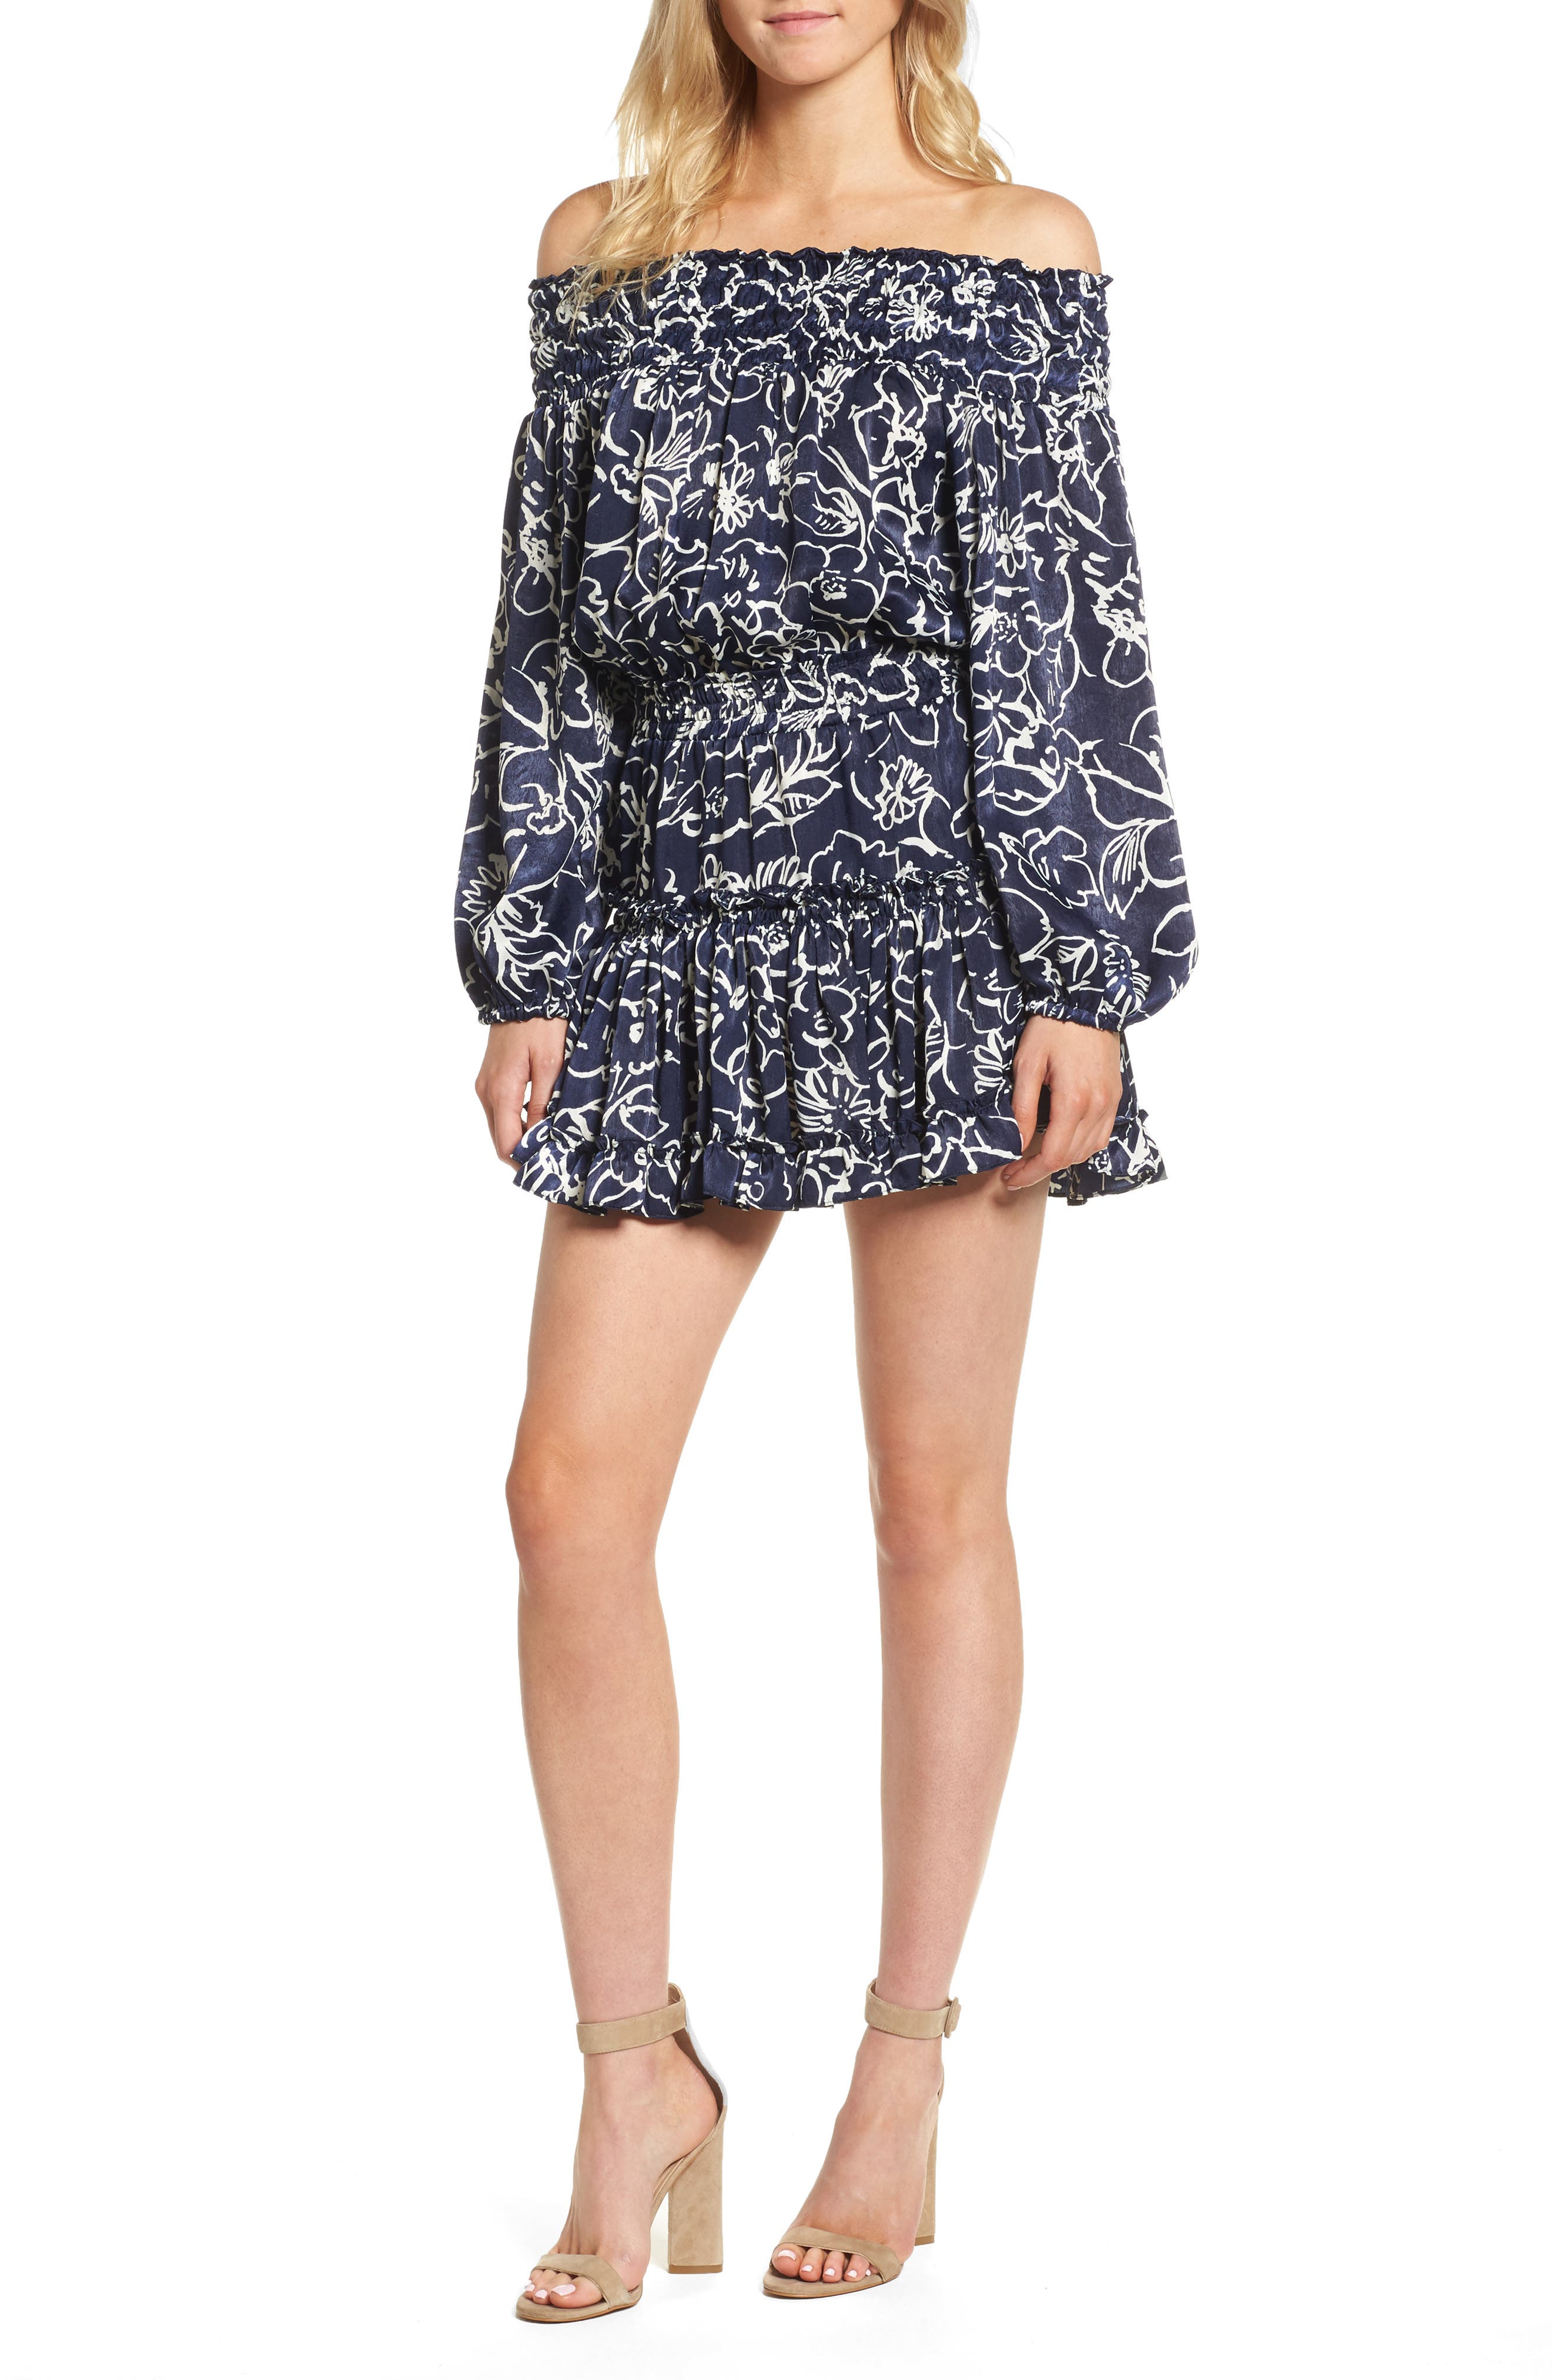 Darla Off the Shoulder Minidress,                         Main,                         color, Navy/ White